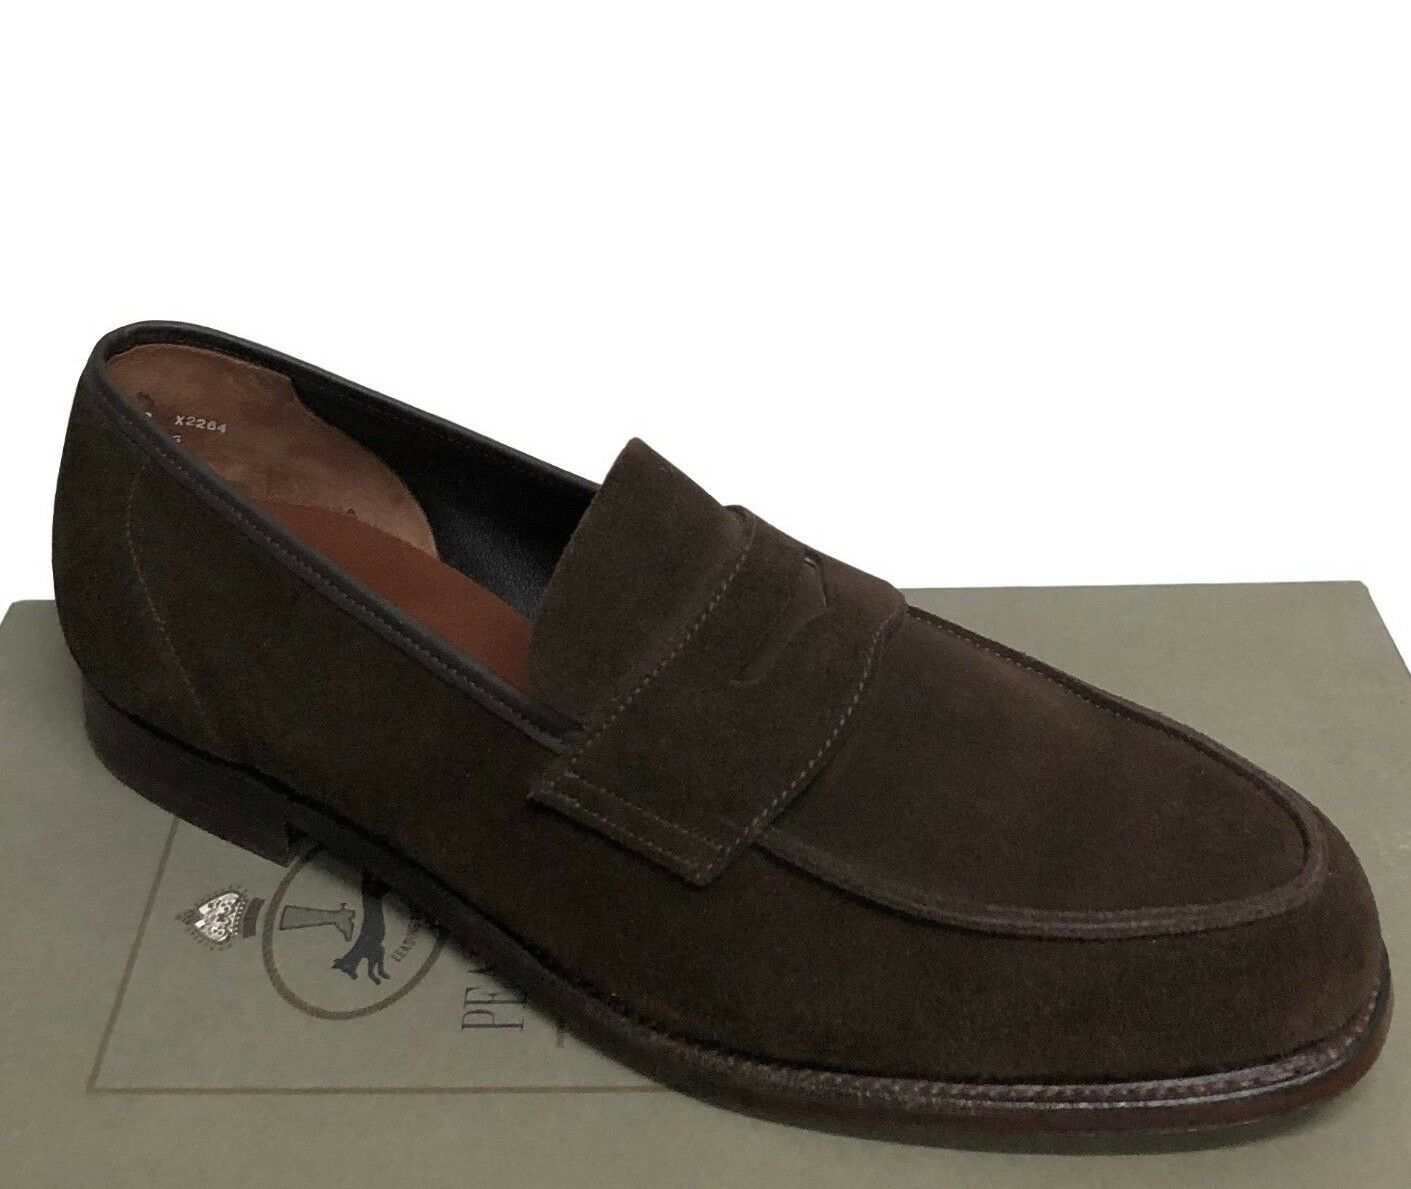 Peal & & & Co by Alfred Ssilver Brown Suede Apron Toe New Loafers Size 10 0a8bcc